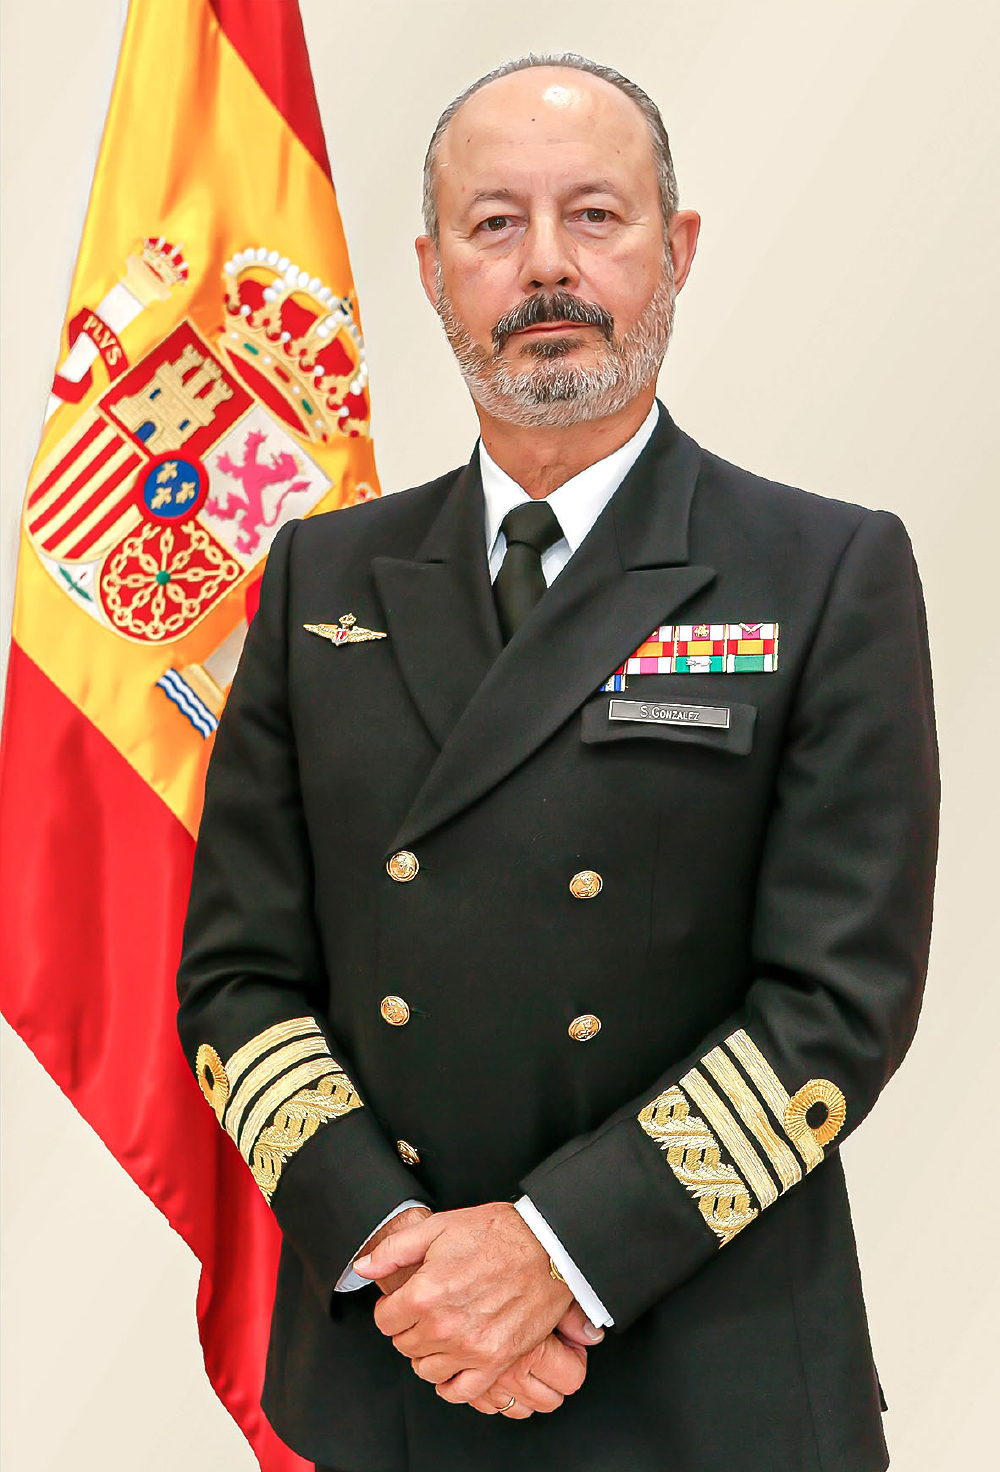 Defense Industry Integration and Interoperability Call for Joint Developments, Building on Strong Mediterranean Traditions and Ties Between Spain & Turkey